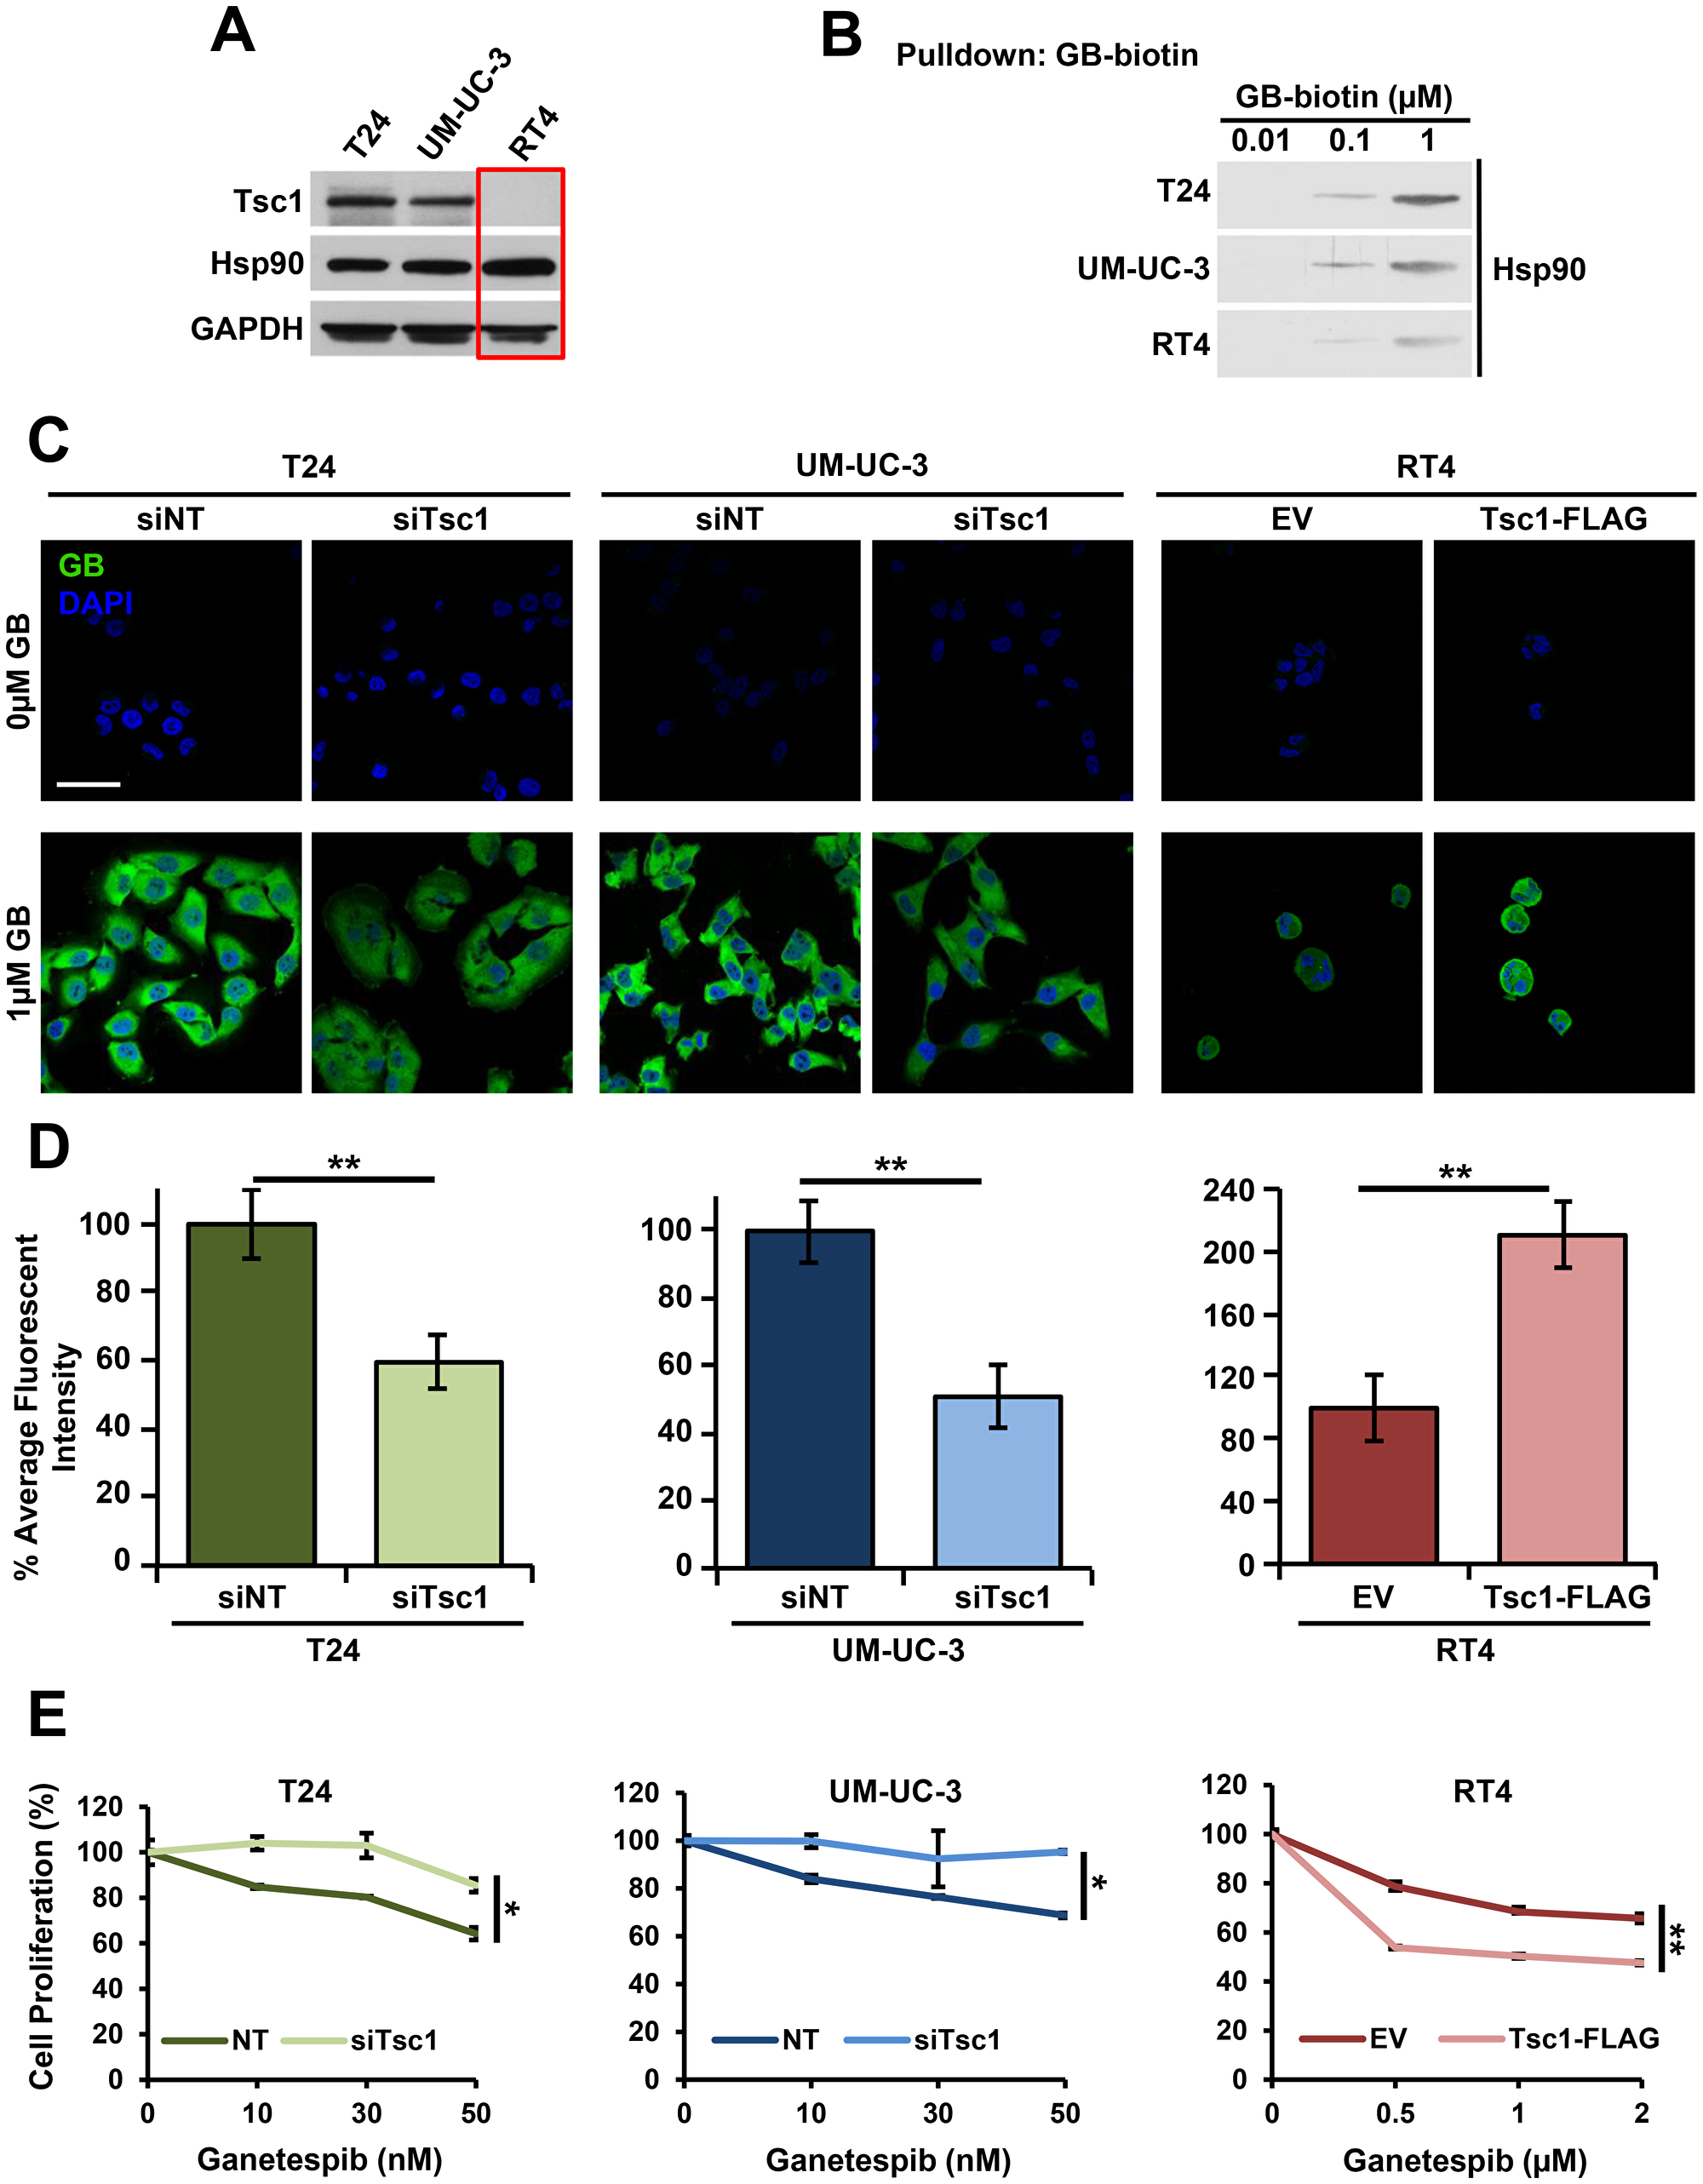 Tsc1 expression determines Hsp90 inhibitor accumulation and sensitivity in bladder cancer cells.